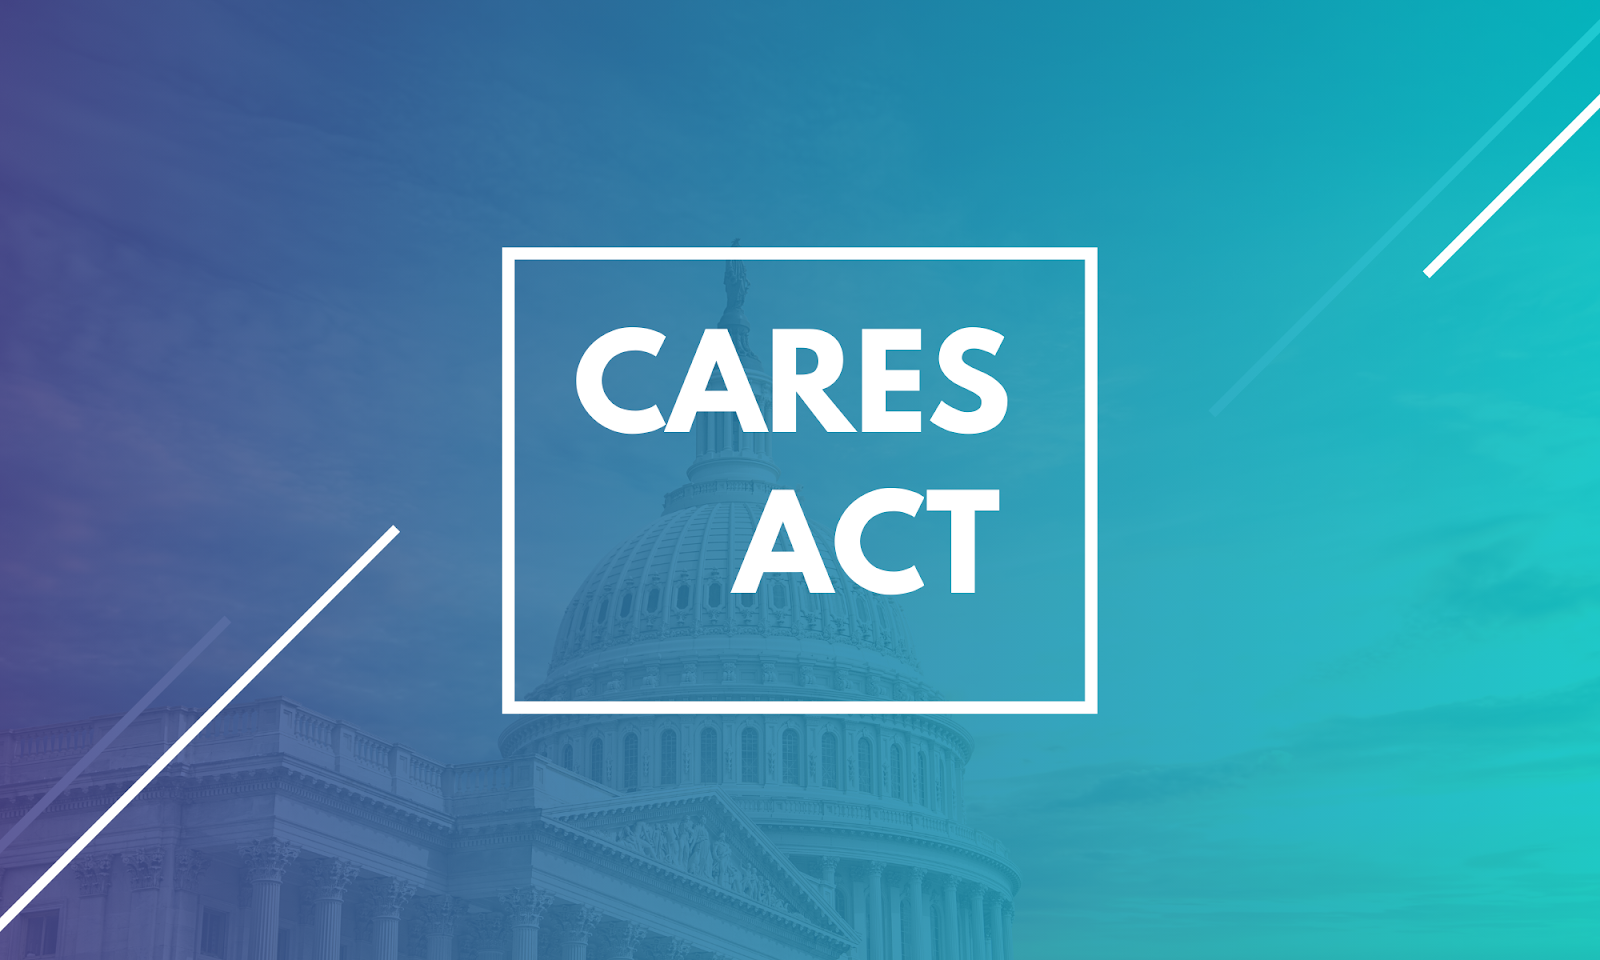 Care's Act